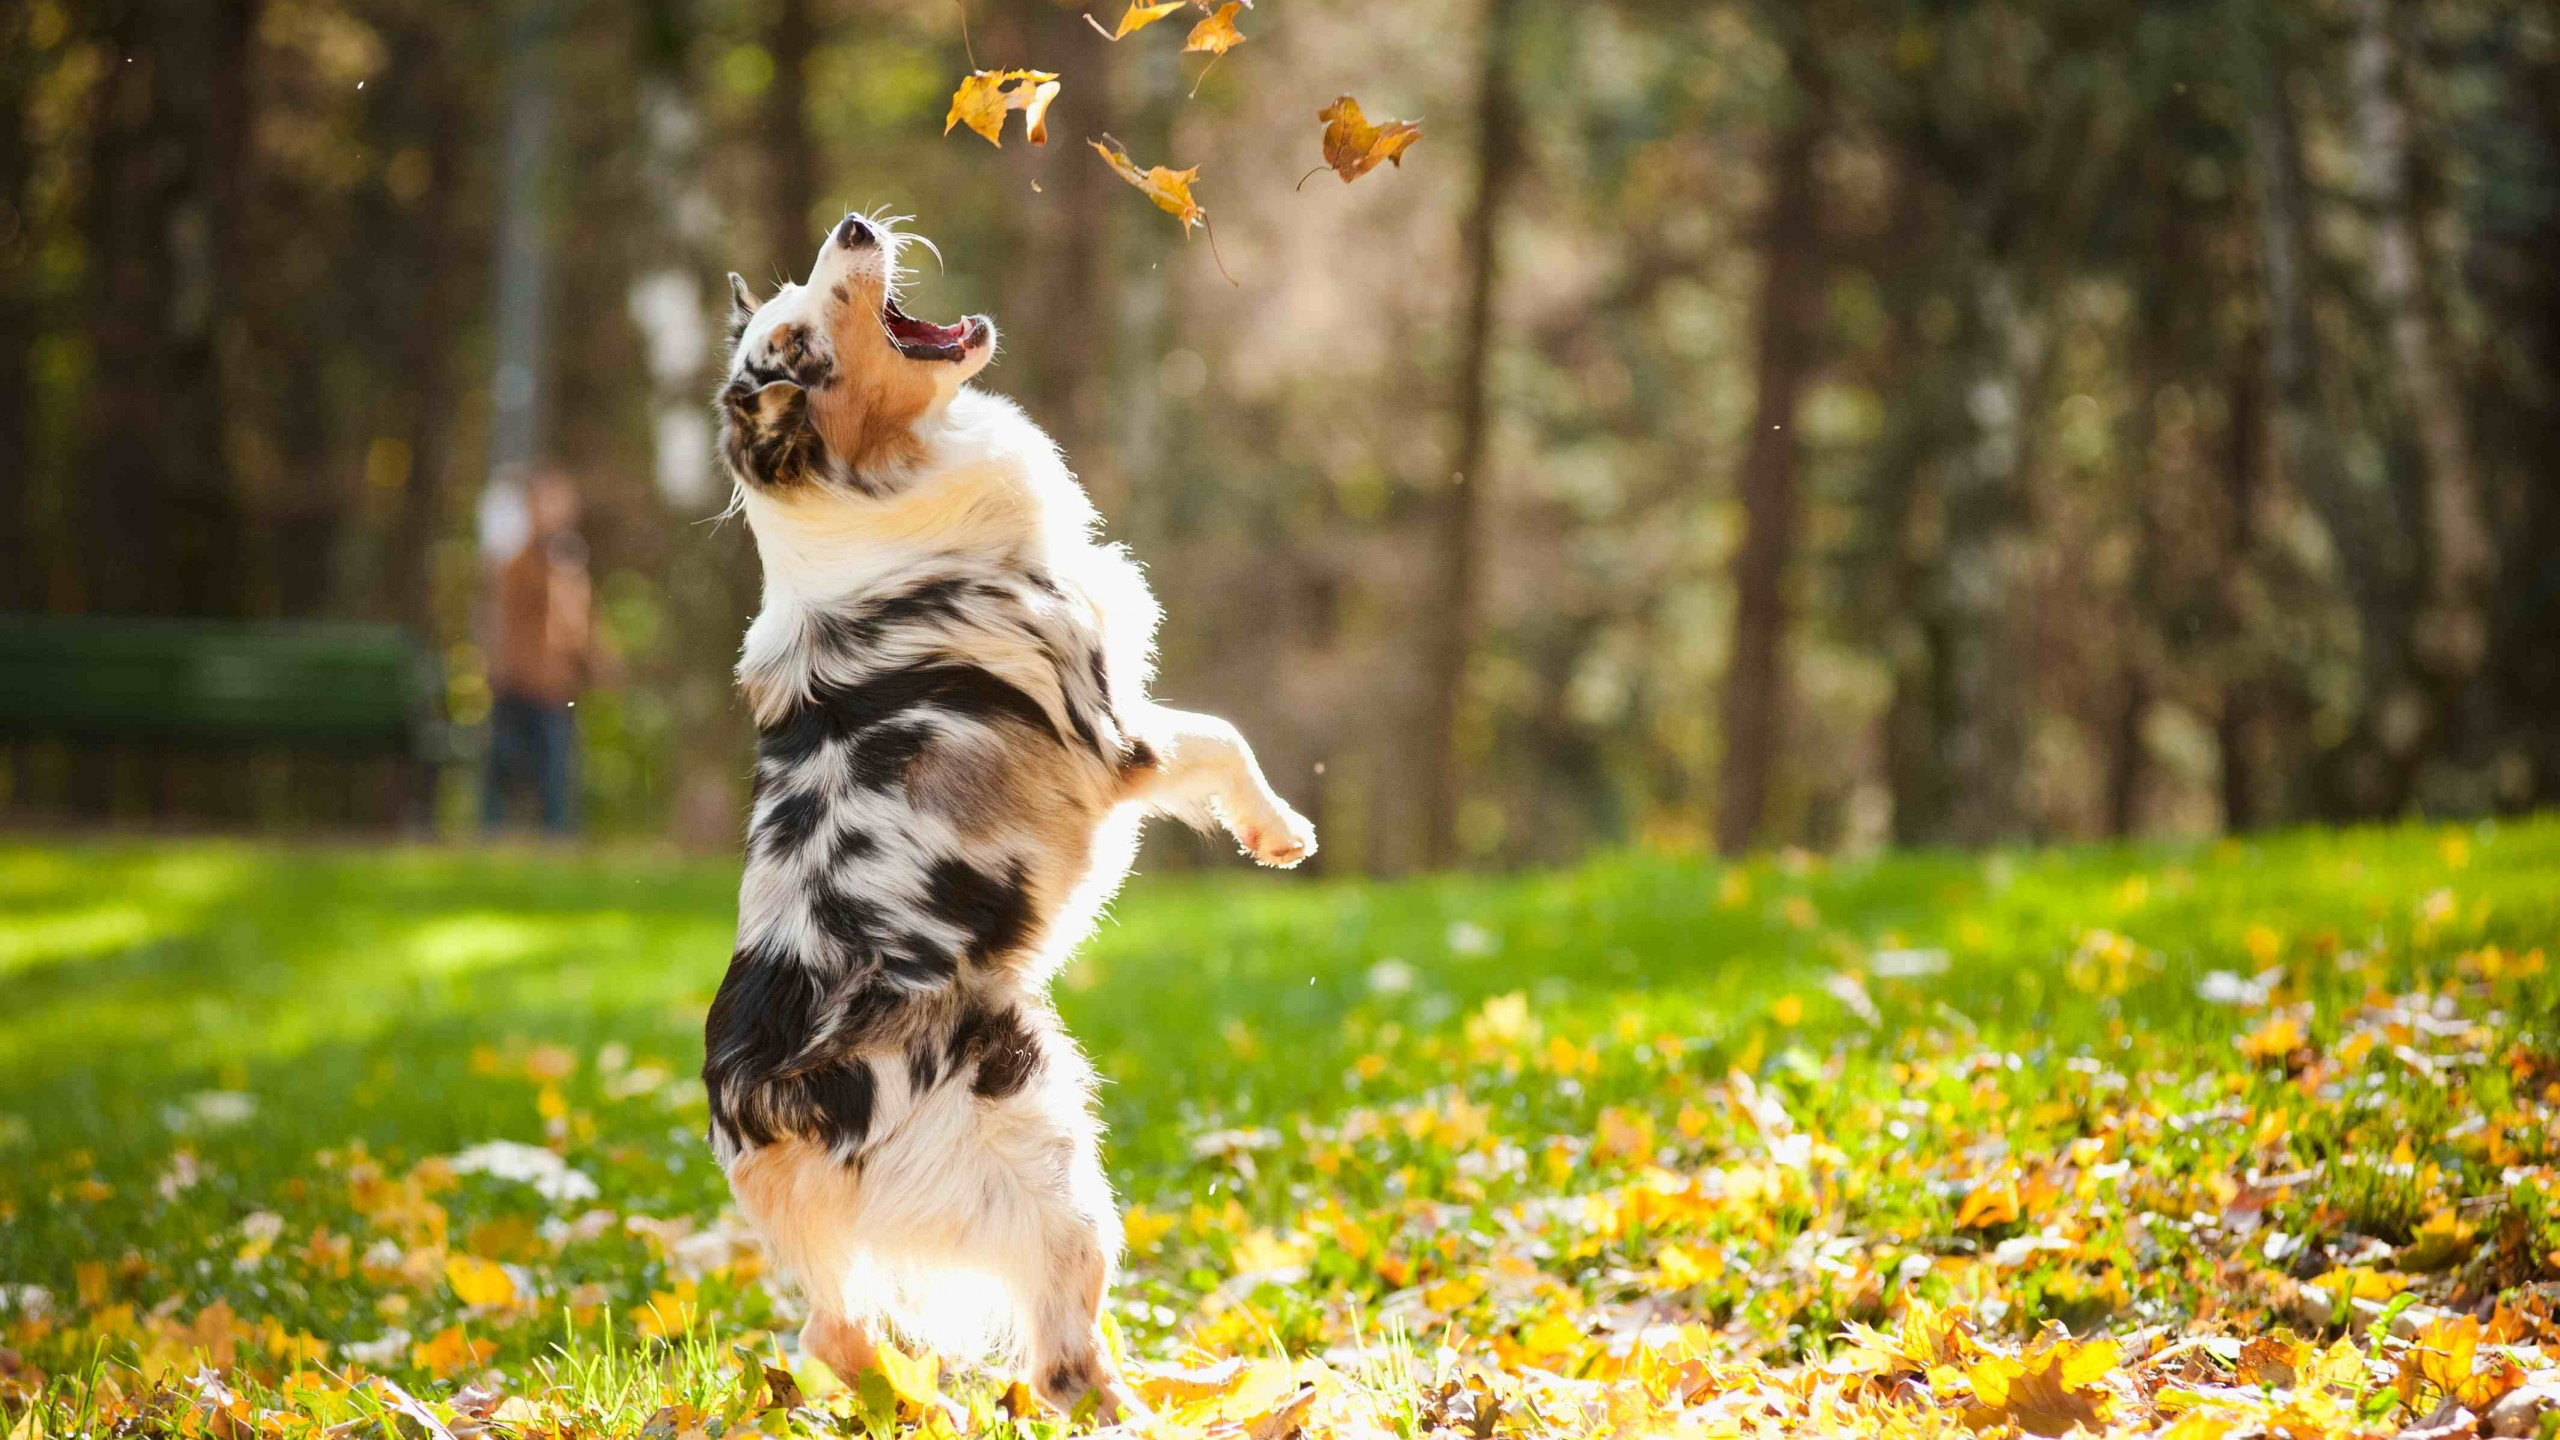 Cartoon Hd Wallpaper With Quotes Wallpaper Dog Puppy Jumping Leaves Autumn Pet Green